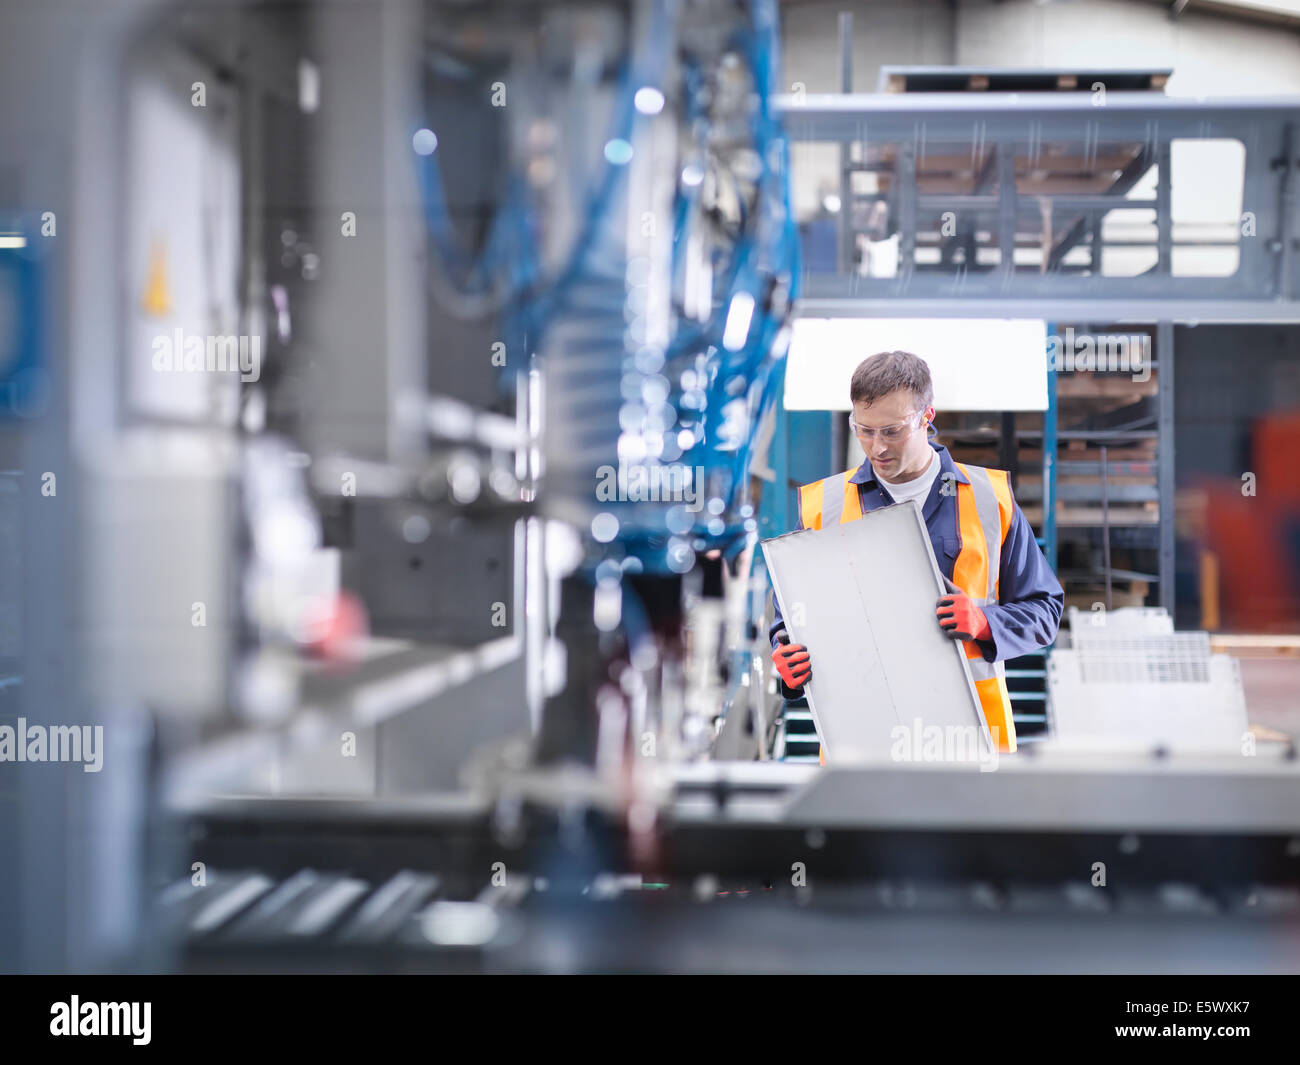 Worker inspecting parts next to robotic metal cutting machine in sheet metal factory - Stock Image